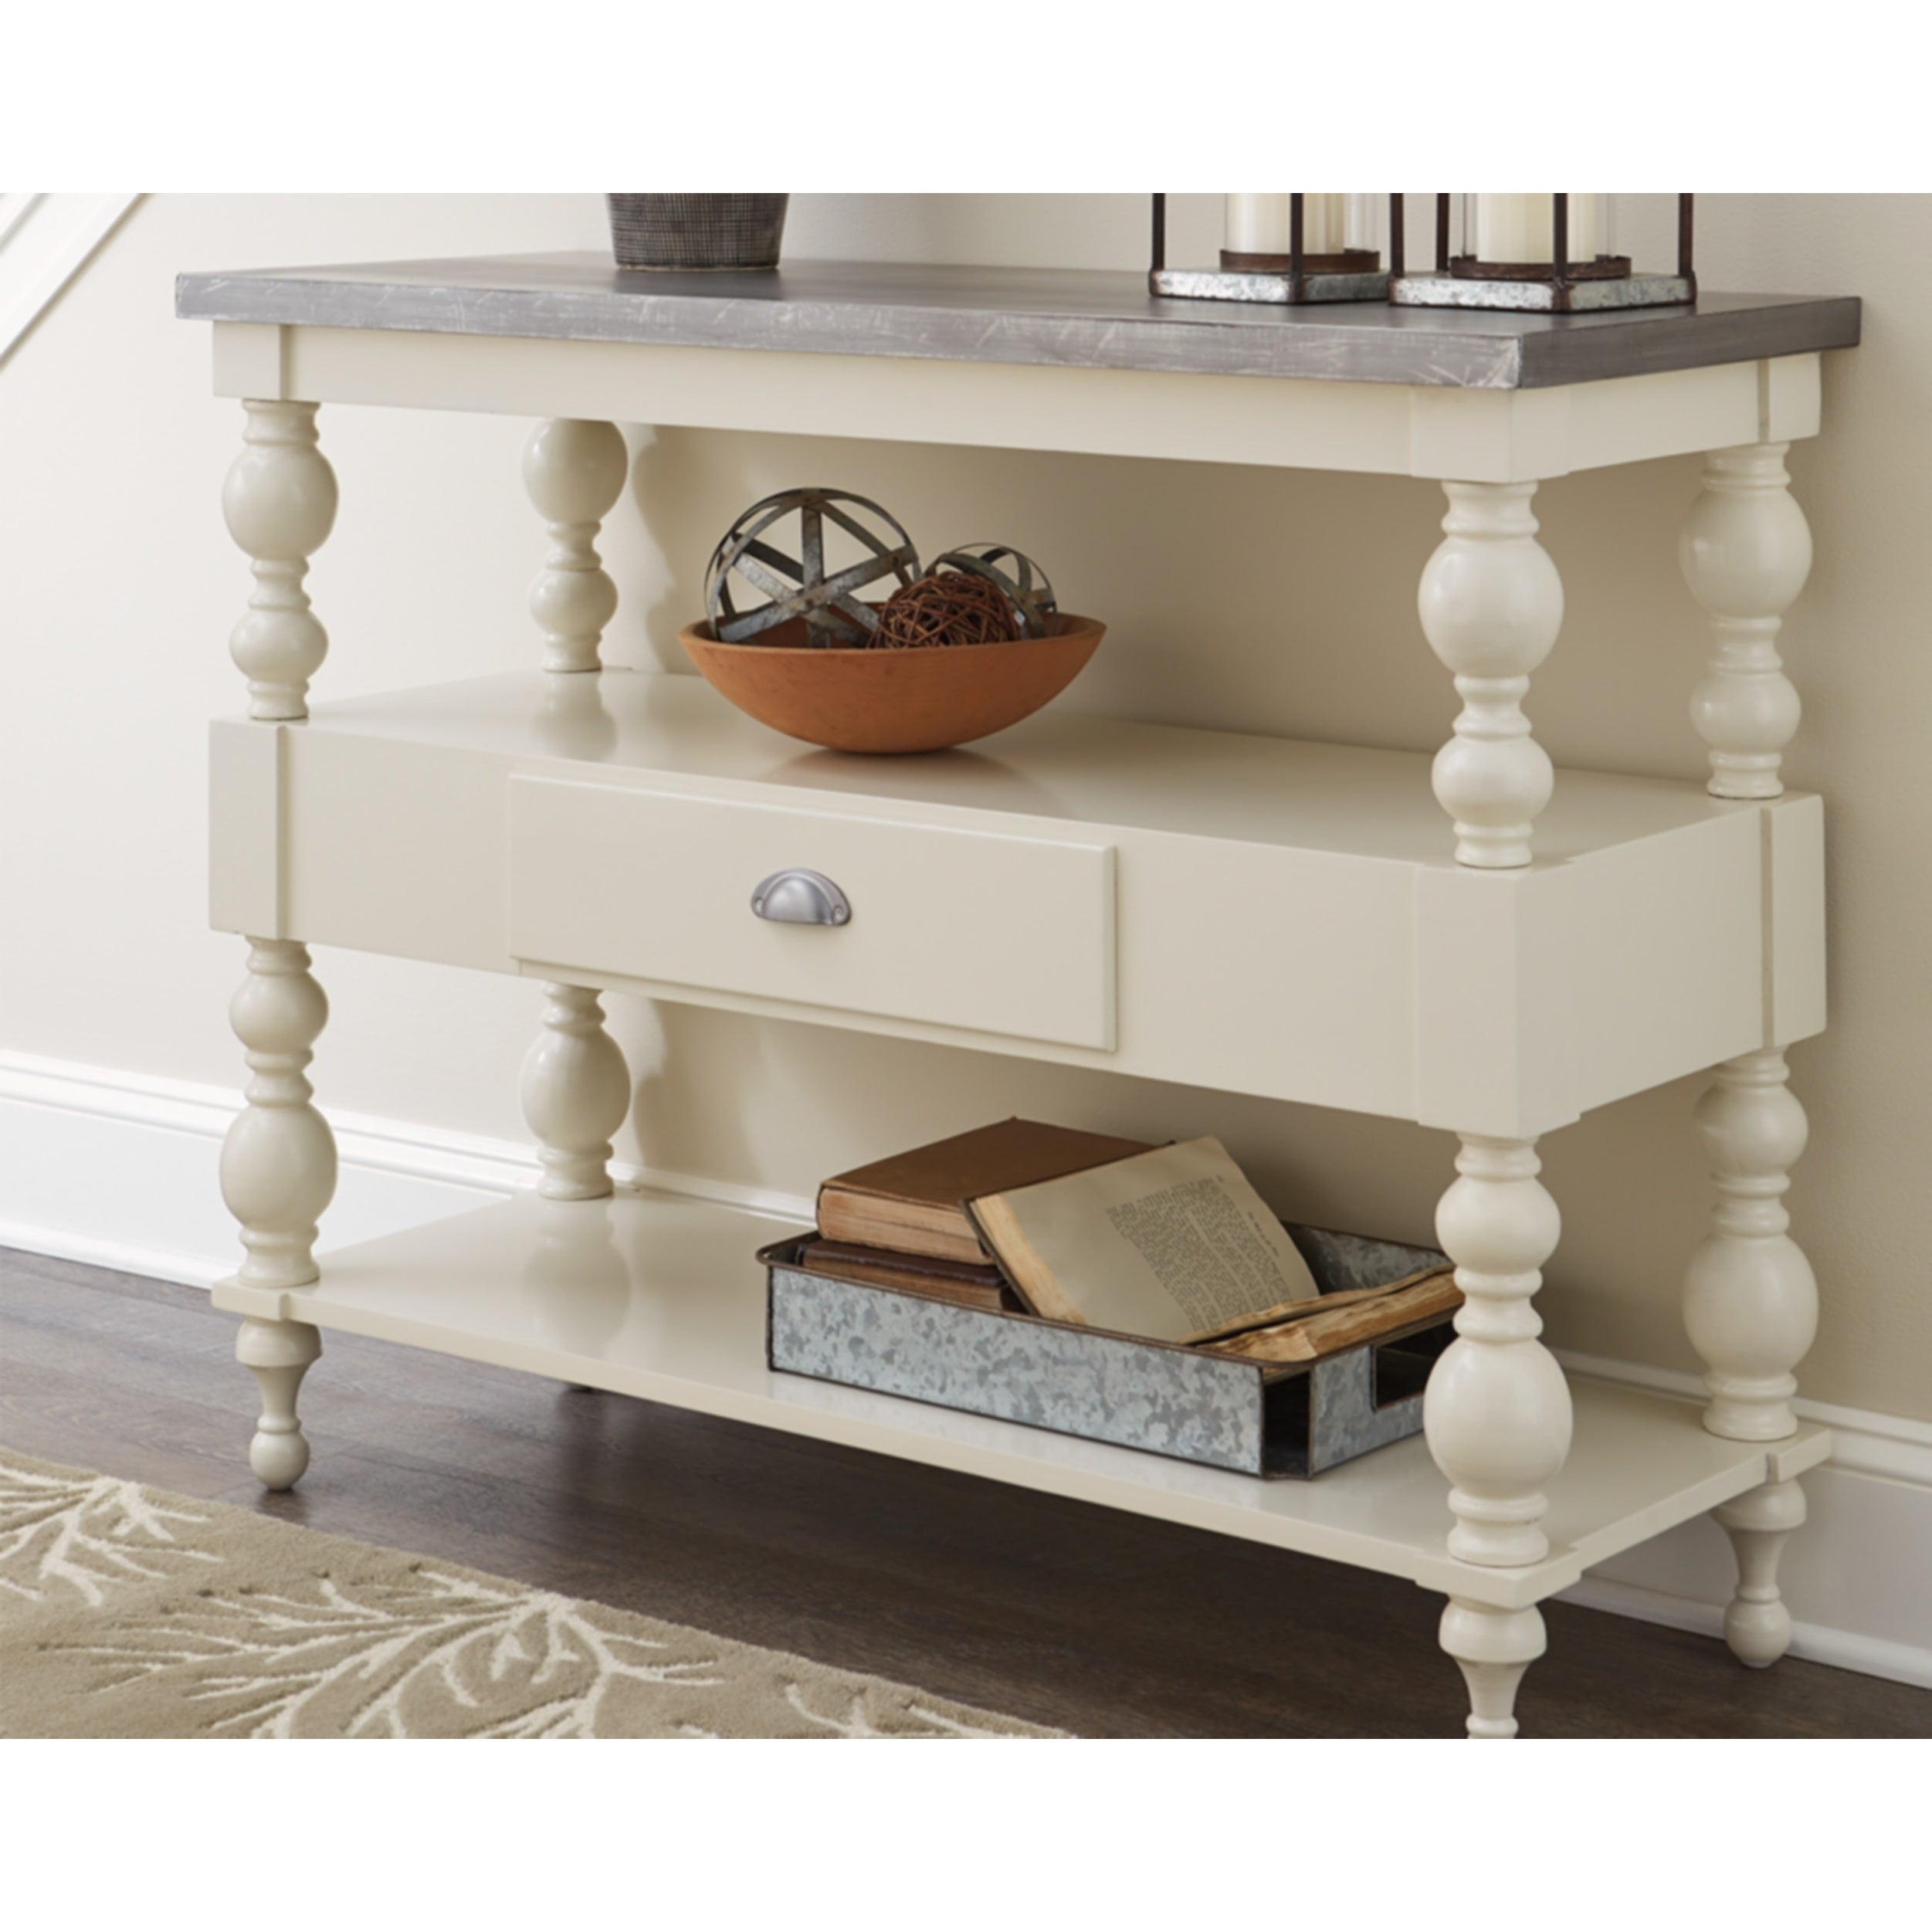 Outstanding Signature Design By Ashley Fossil Ridge White Antique Grey Sofa Table Spiritservingveterans Wood Chair Design Ideas Spiritservingveteransorg